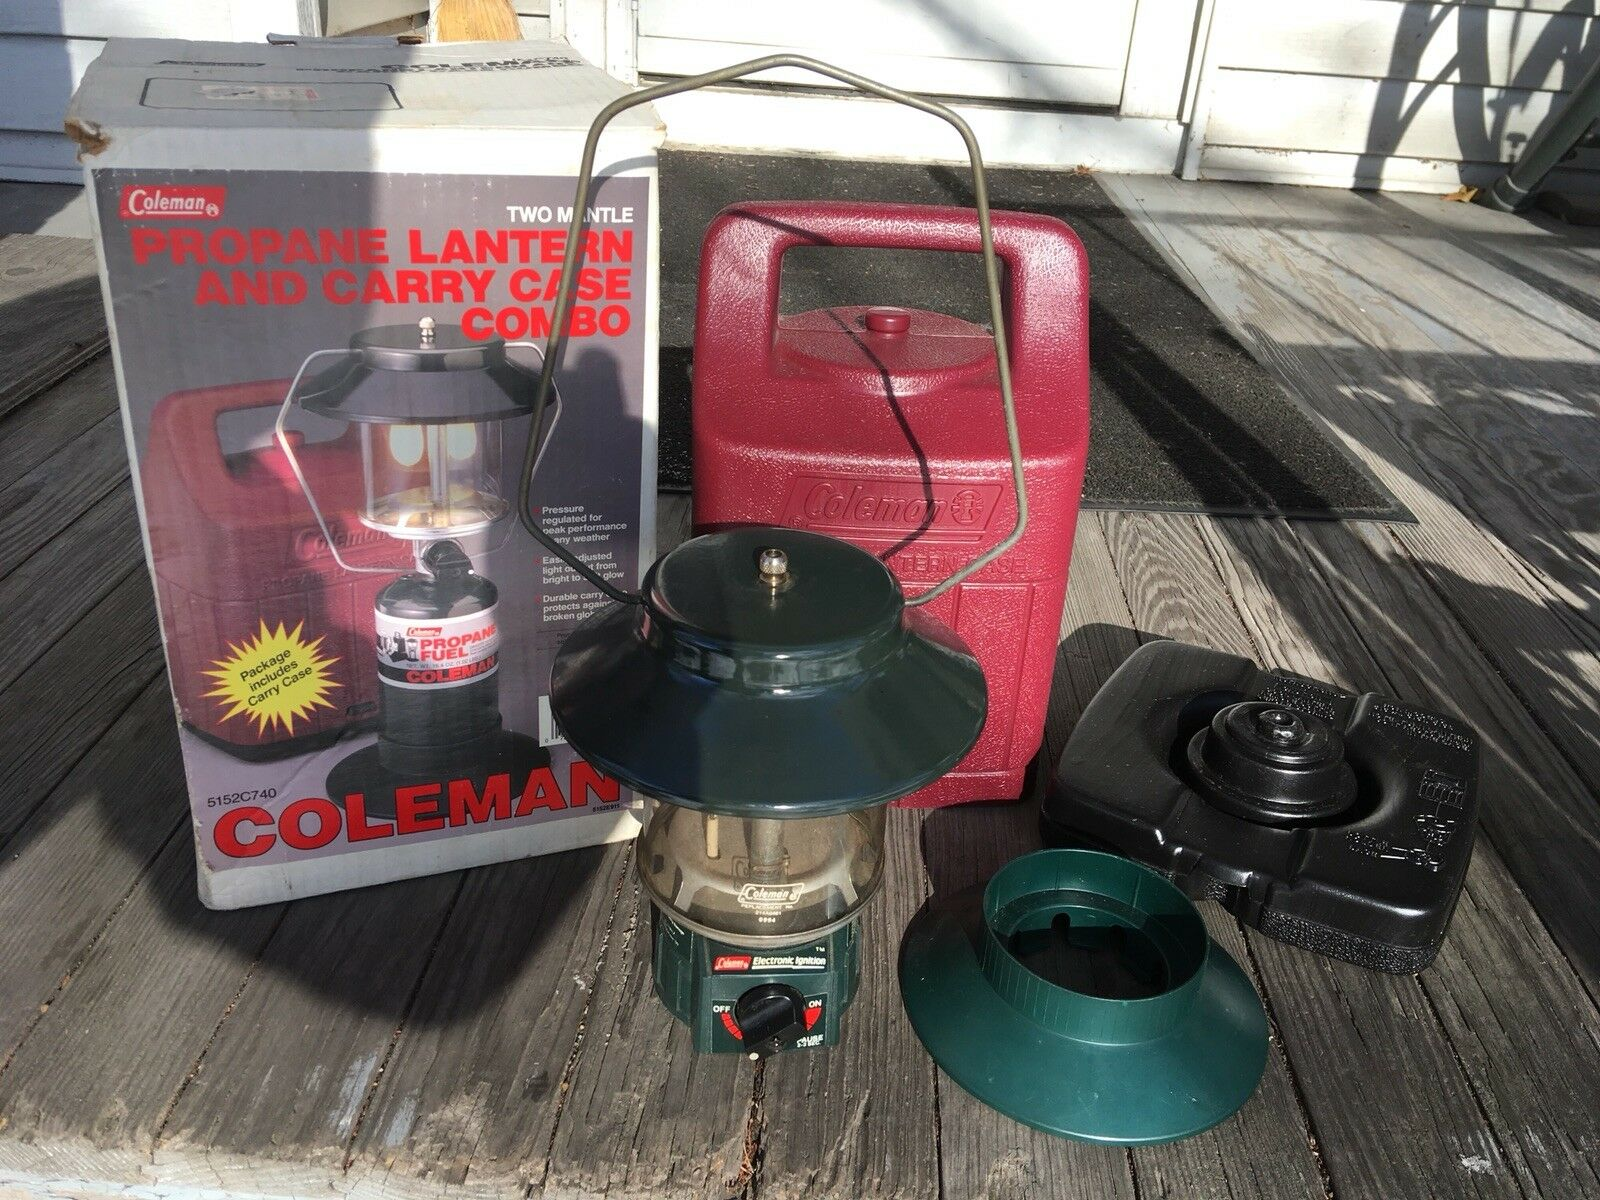 Coleman Double Mantle  Propane Lantern 5152C740 With Case and Original Box   with cheap price to get top brand